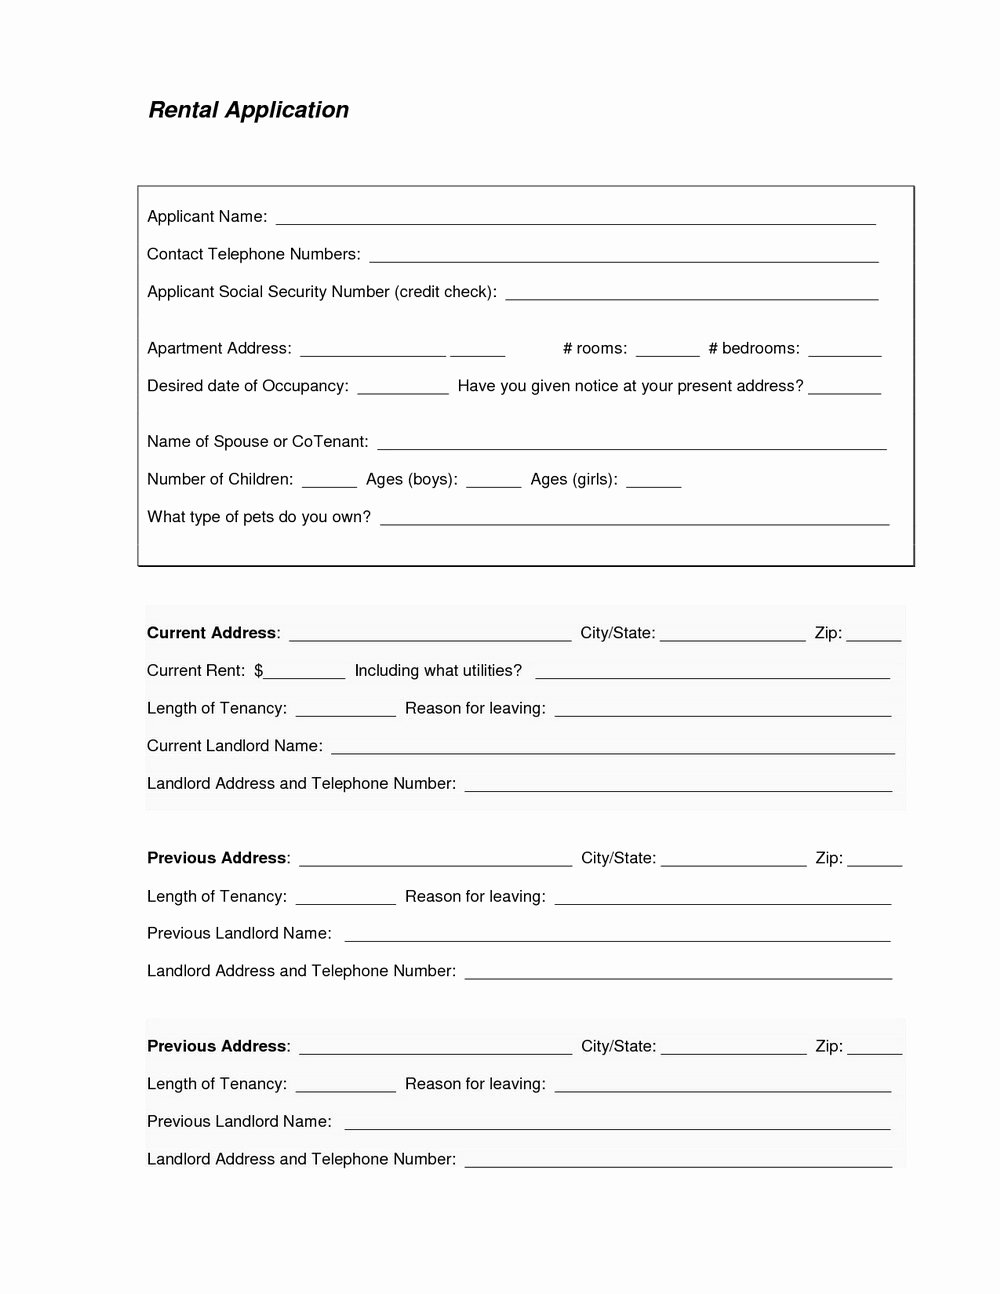 Background Check form Template Luxury Uber Background Check Consent form Download forms 4746